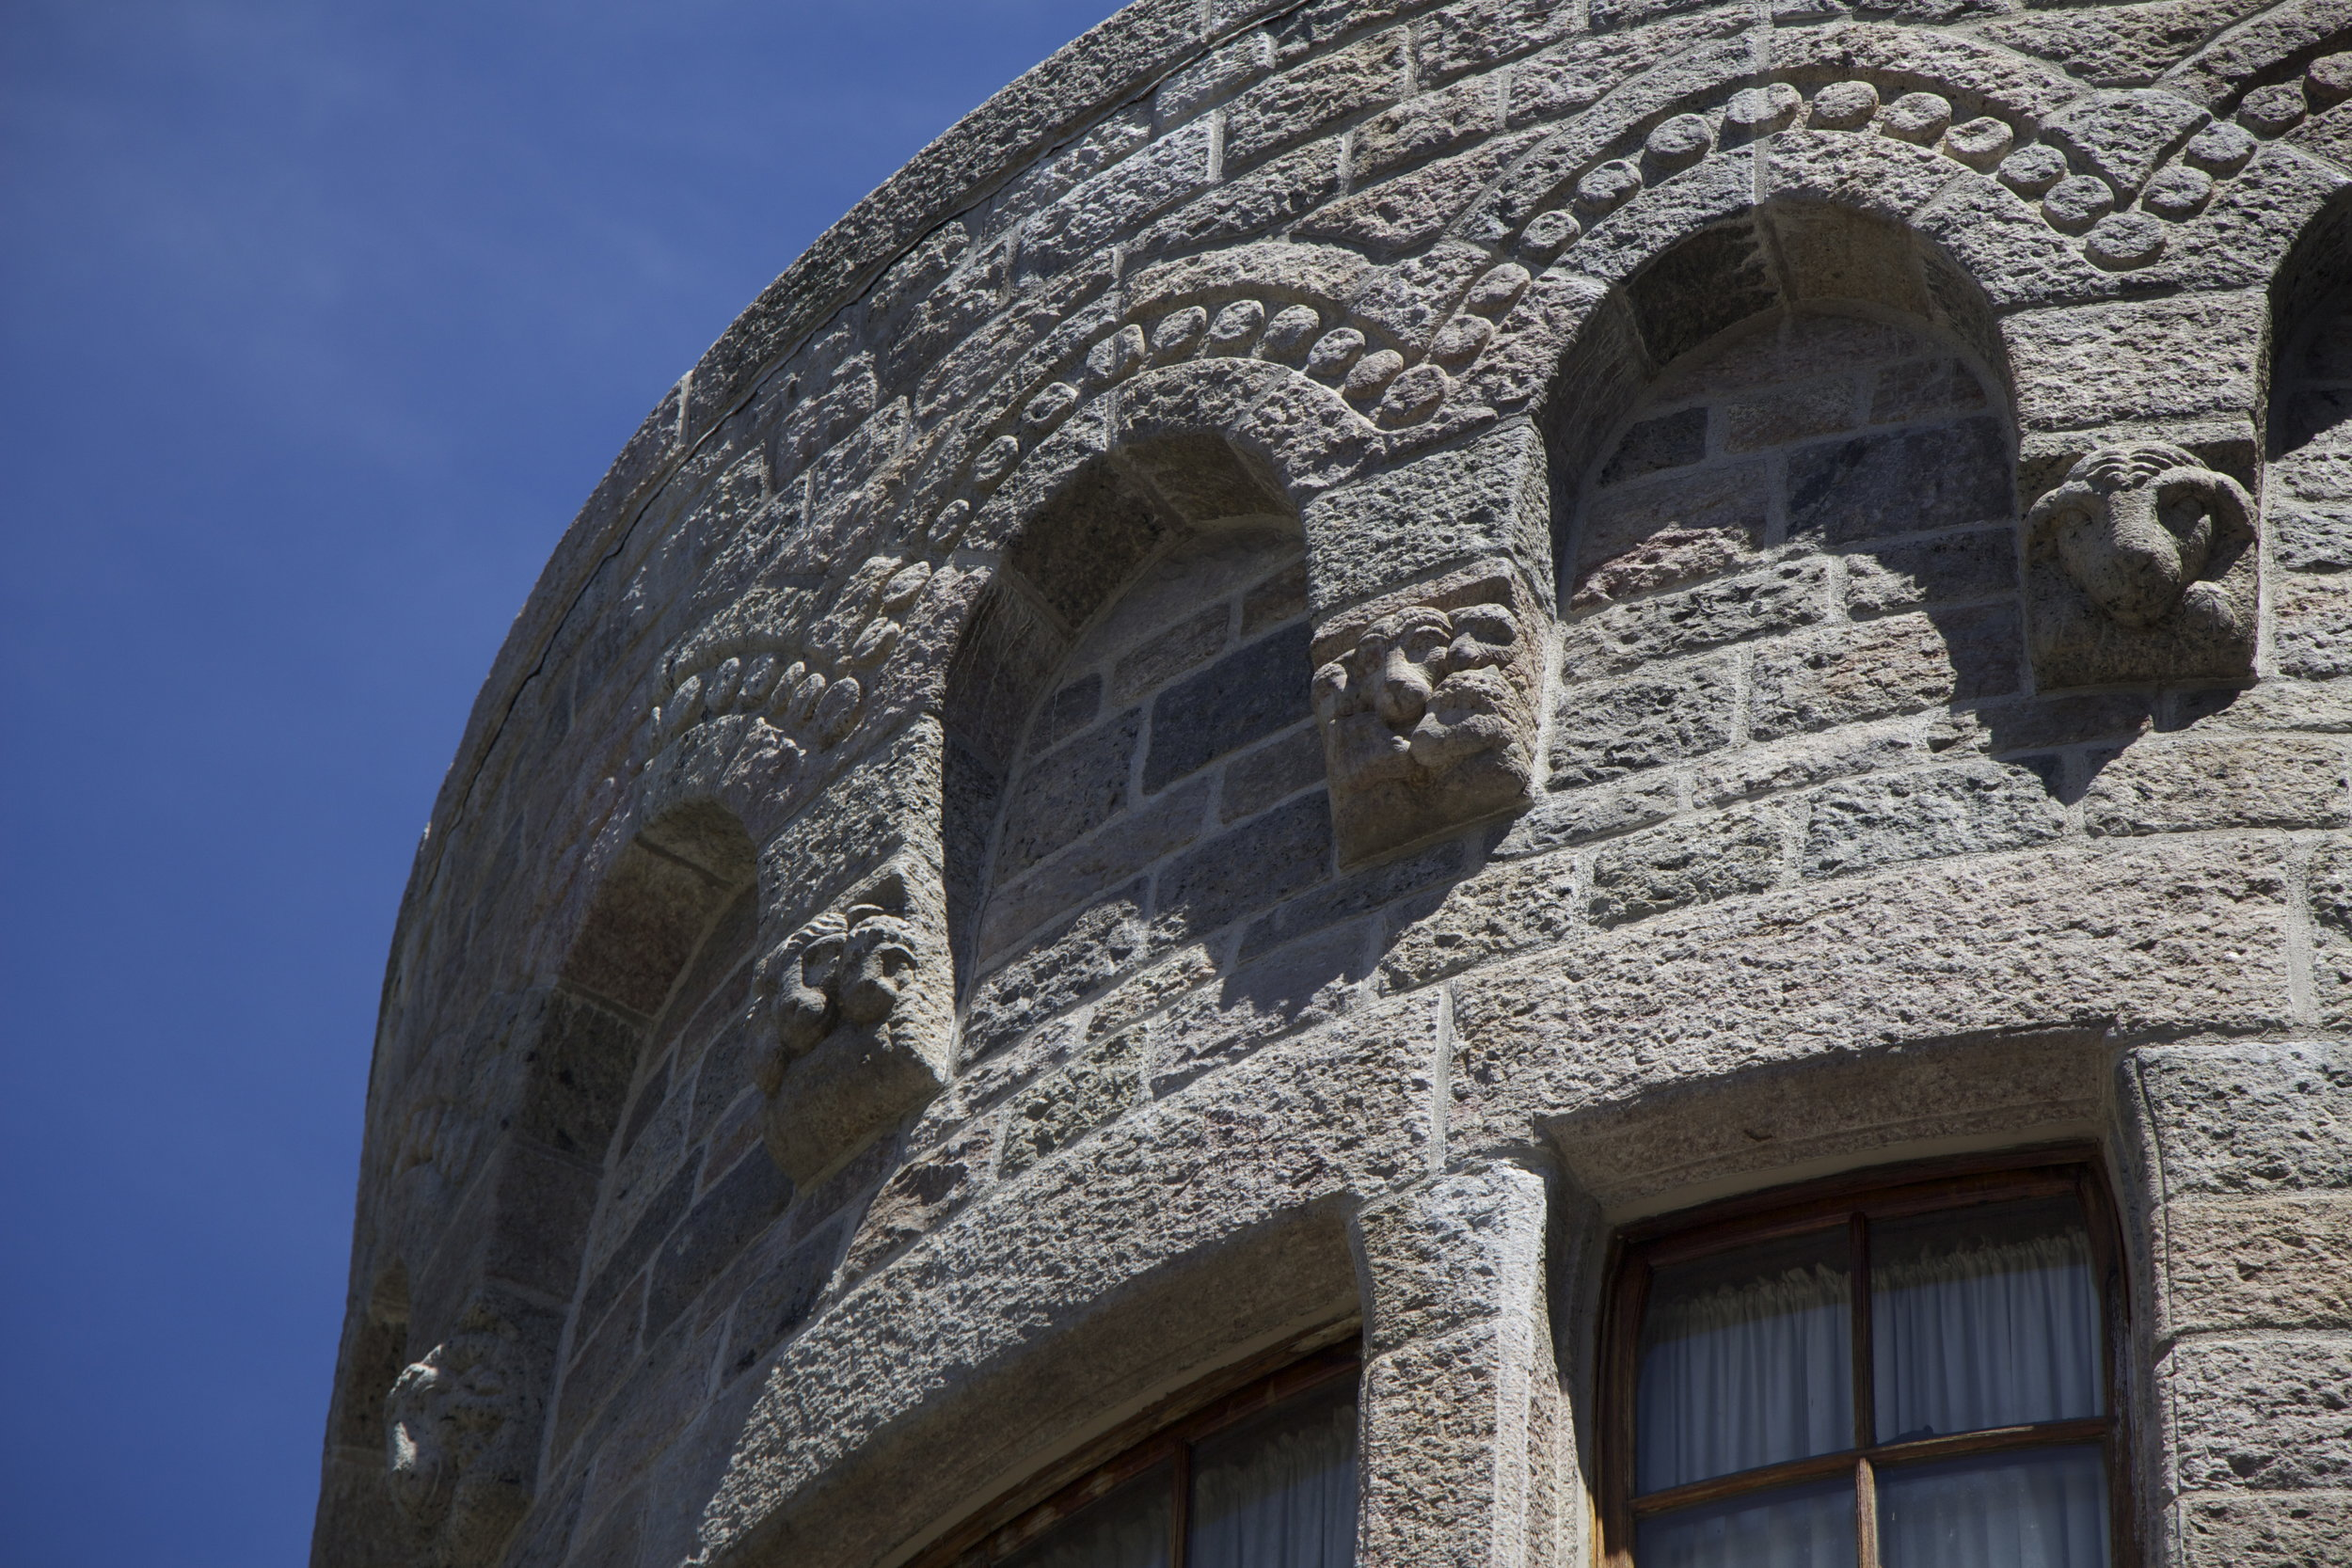 Figure 6: Multiple carvings of sheep decorate the exterior stone fabric of Glencairn.